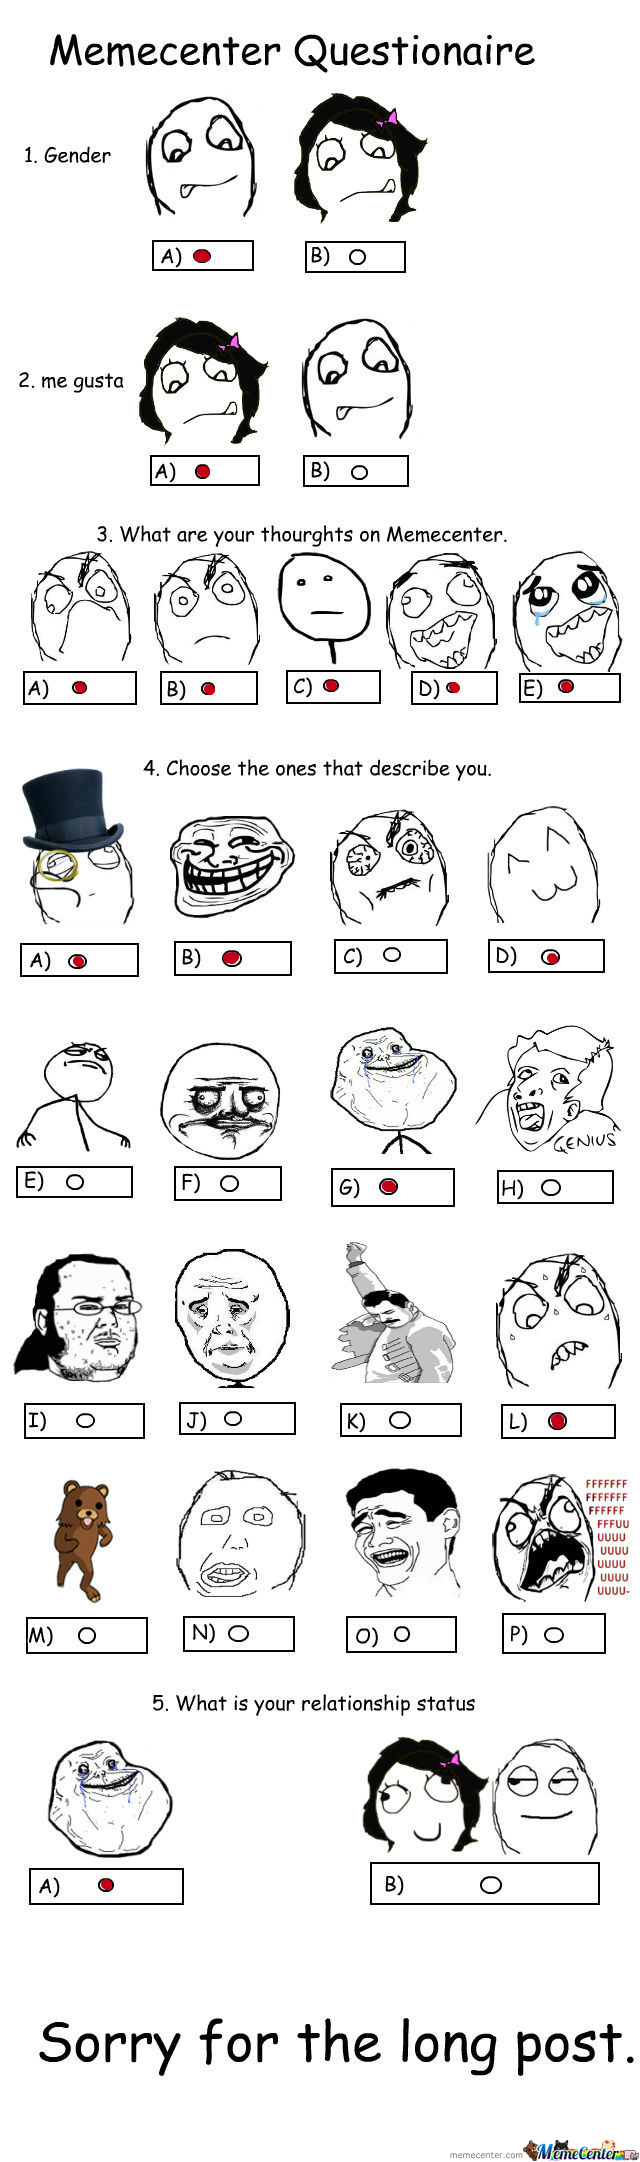 [RMX] Memecenter Questionaire